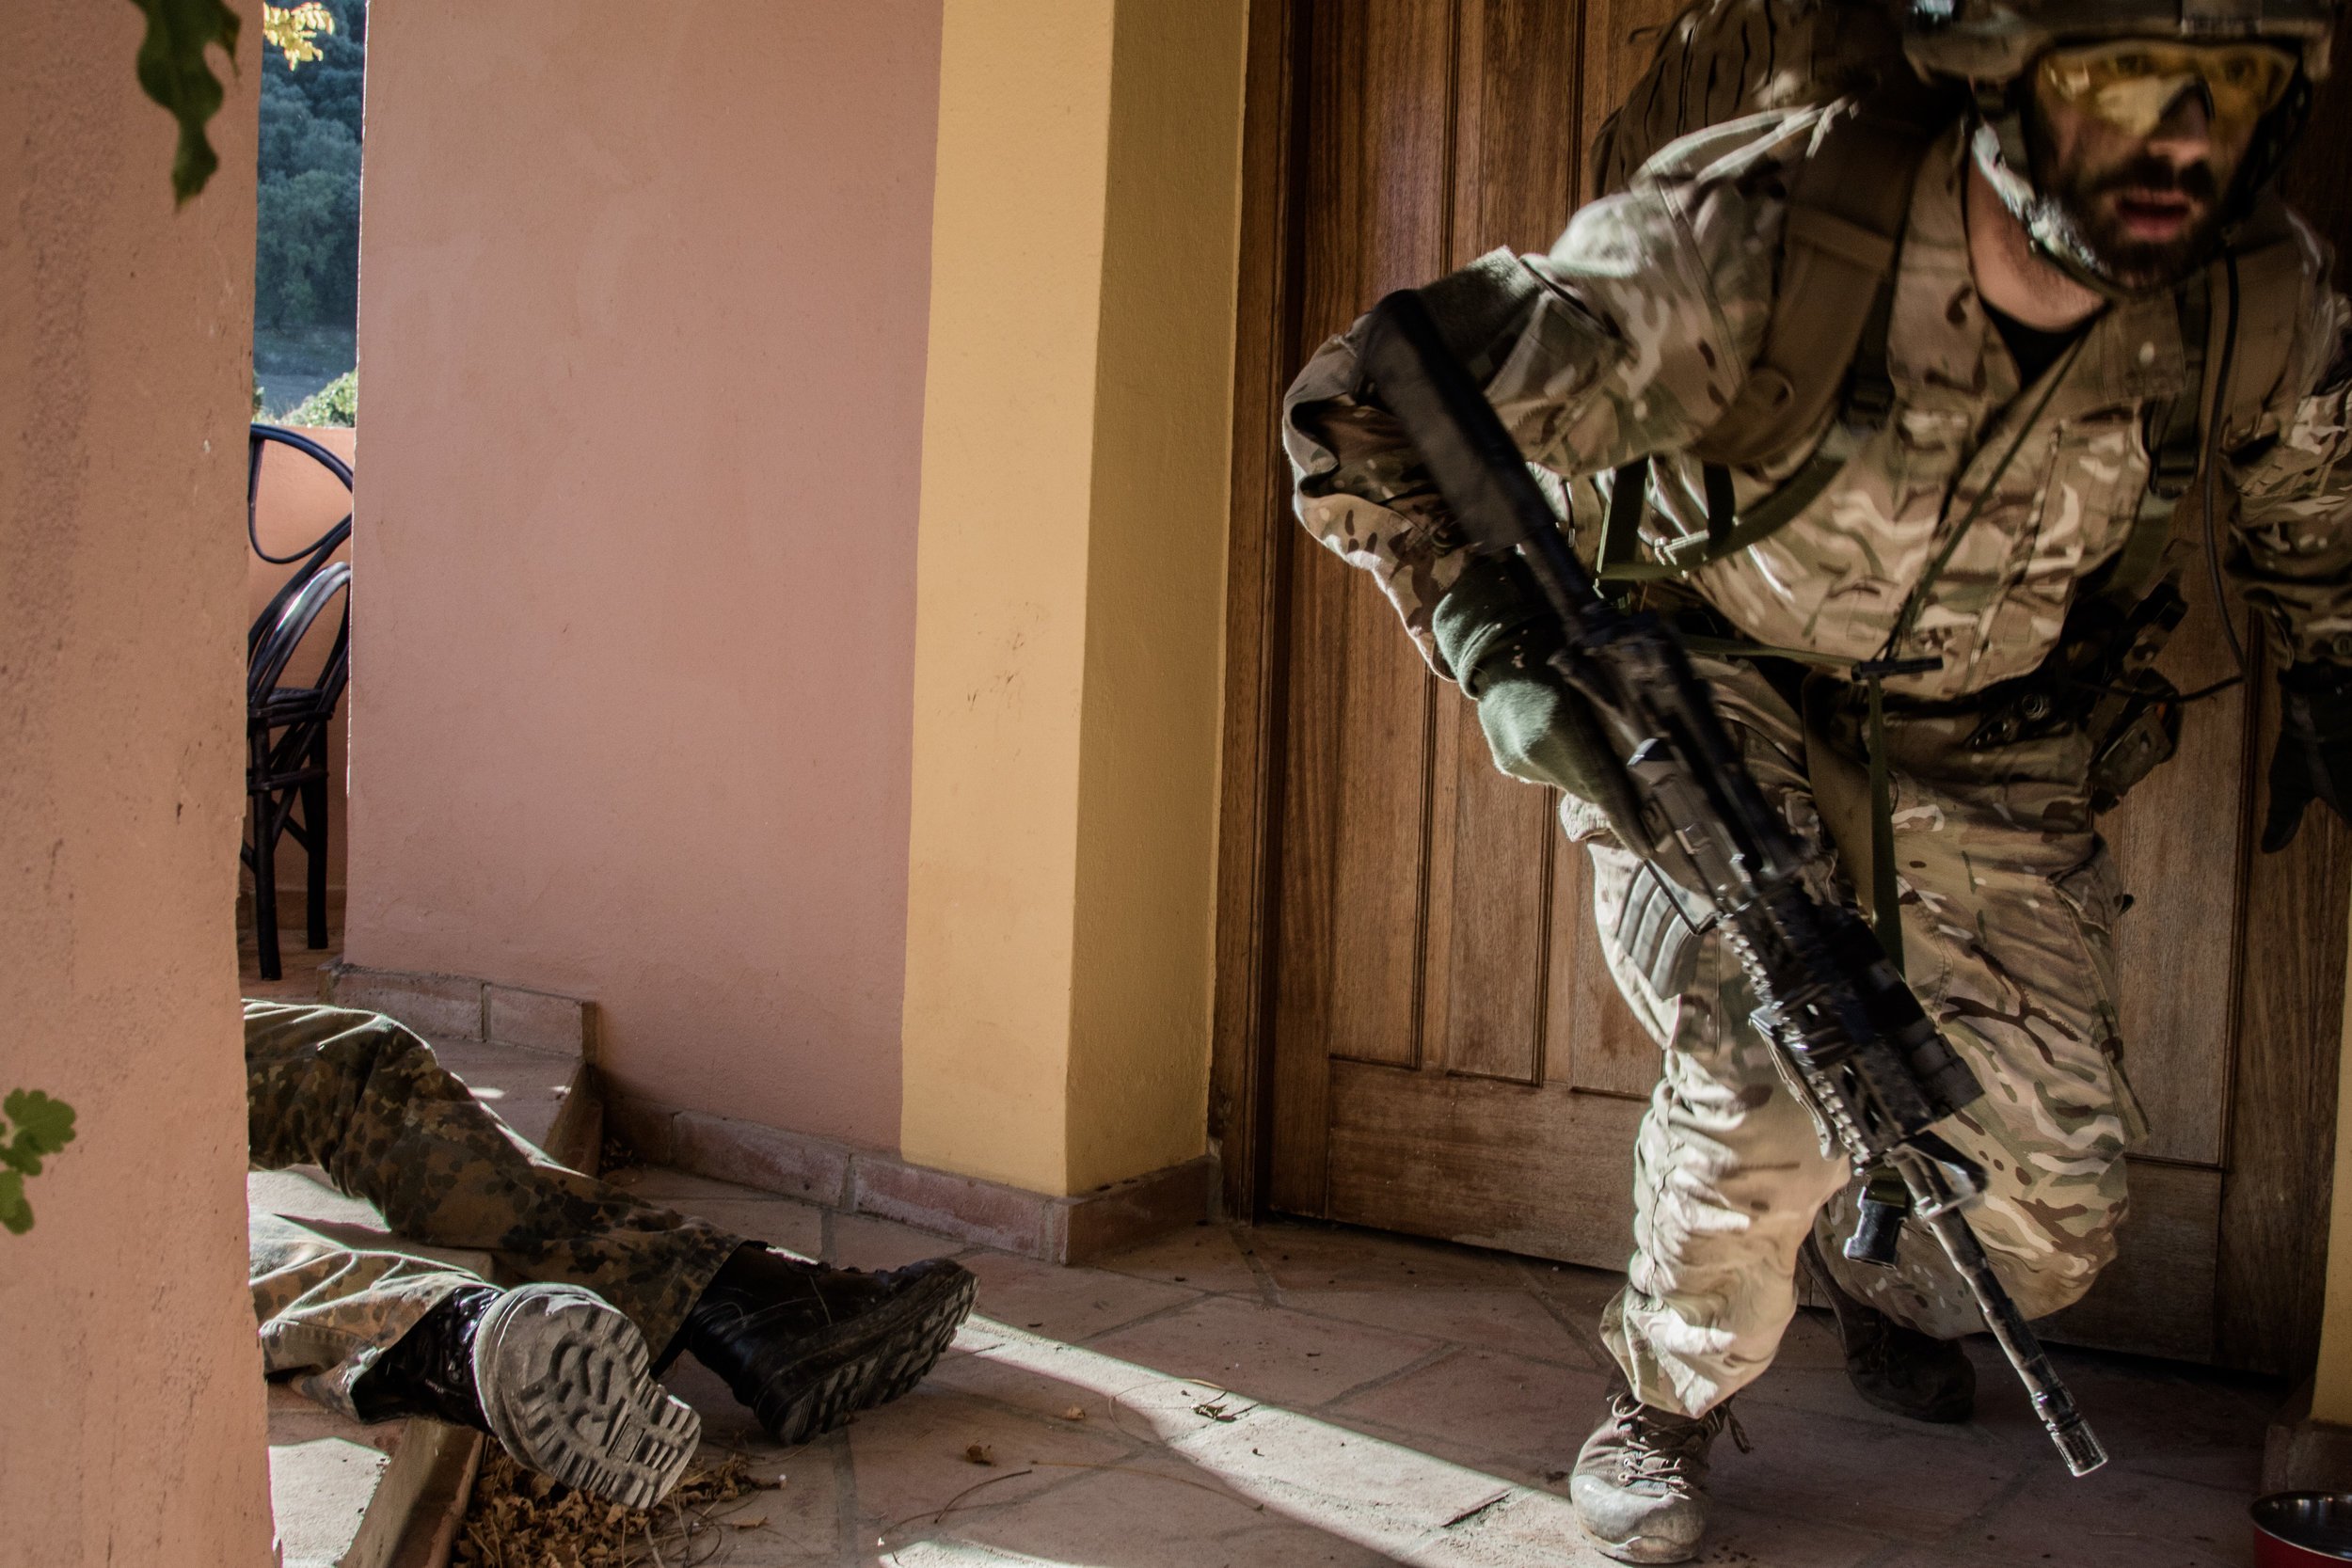 a rebel troop lies on the floor as the government soldier flees from the scene.